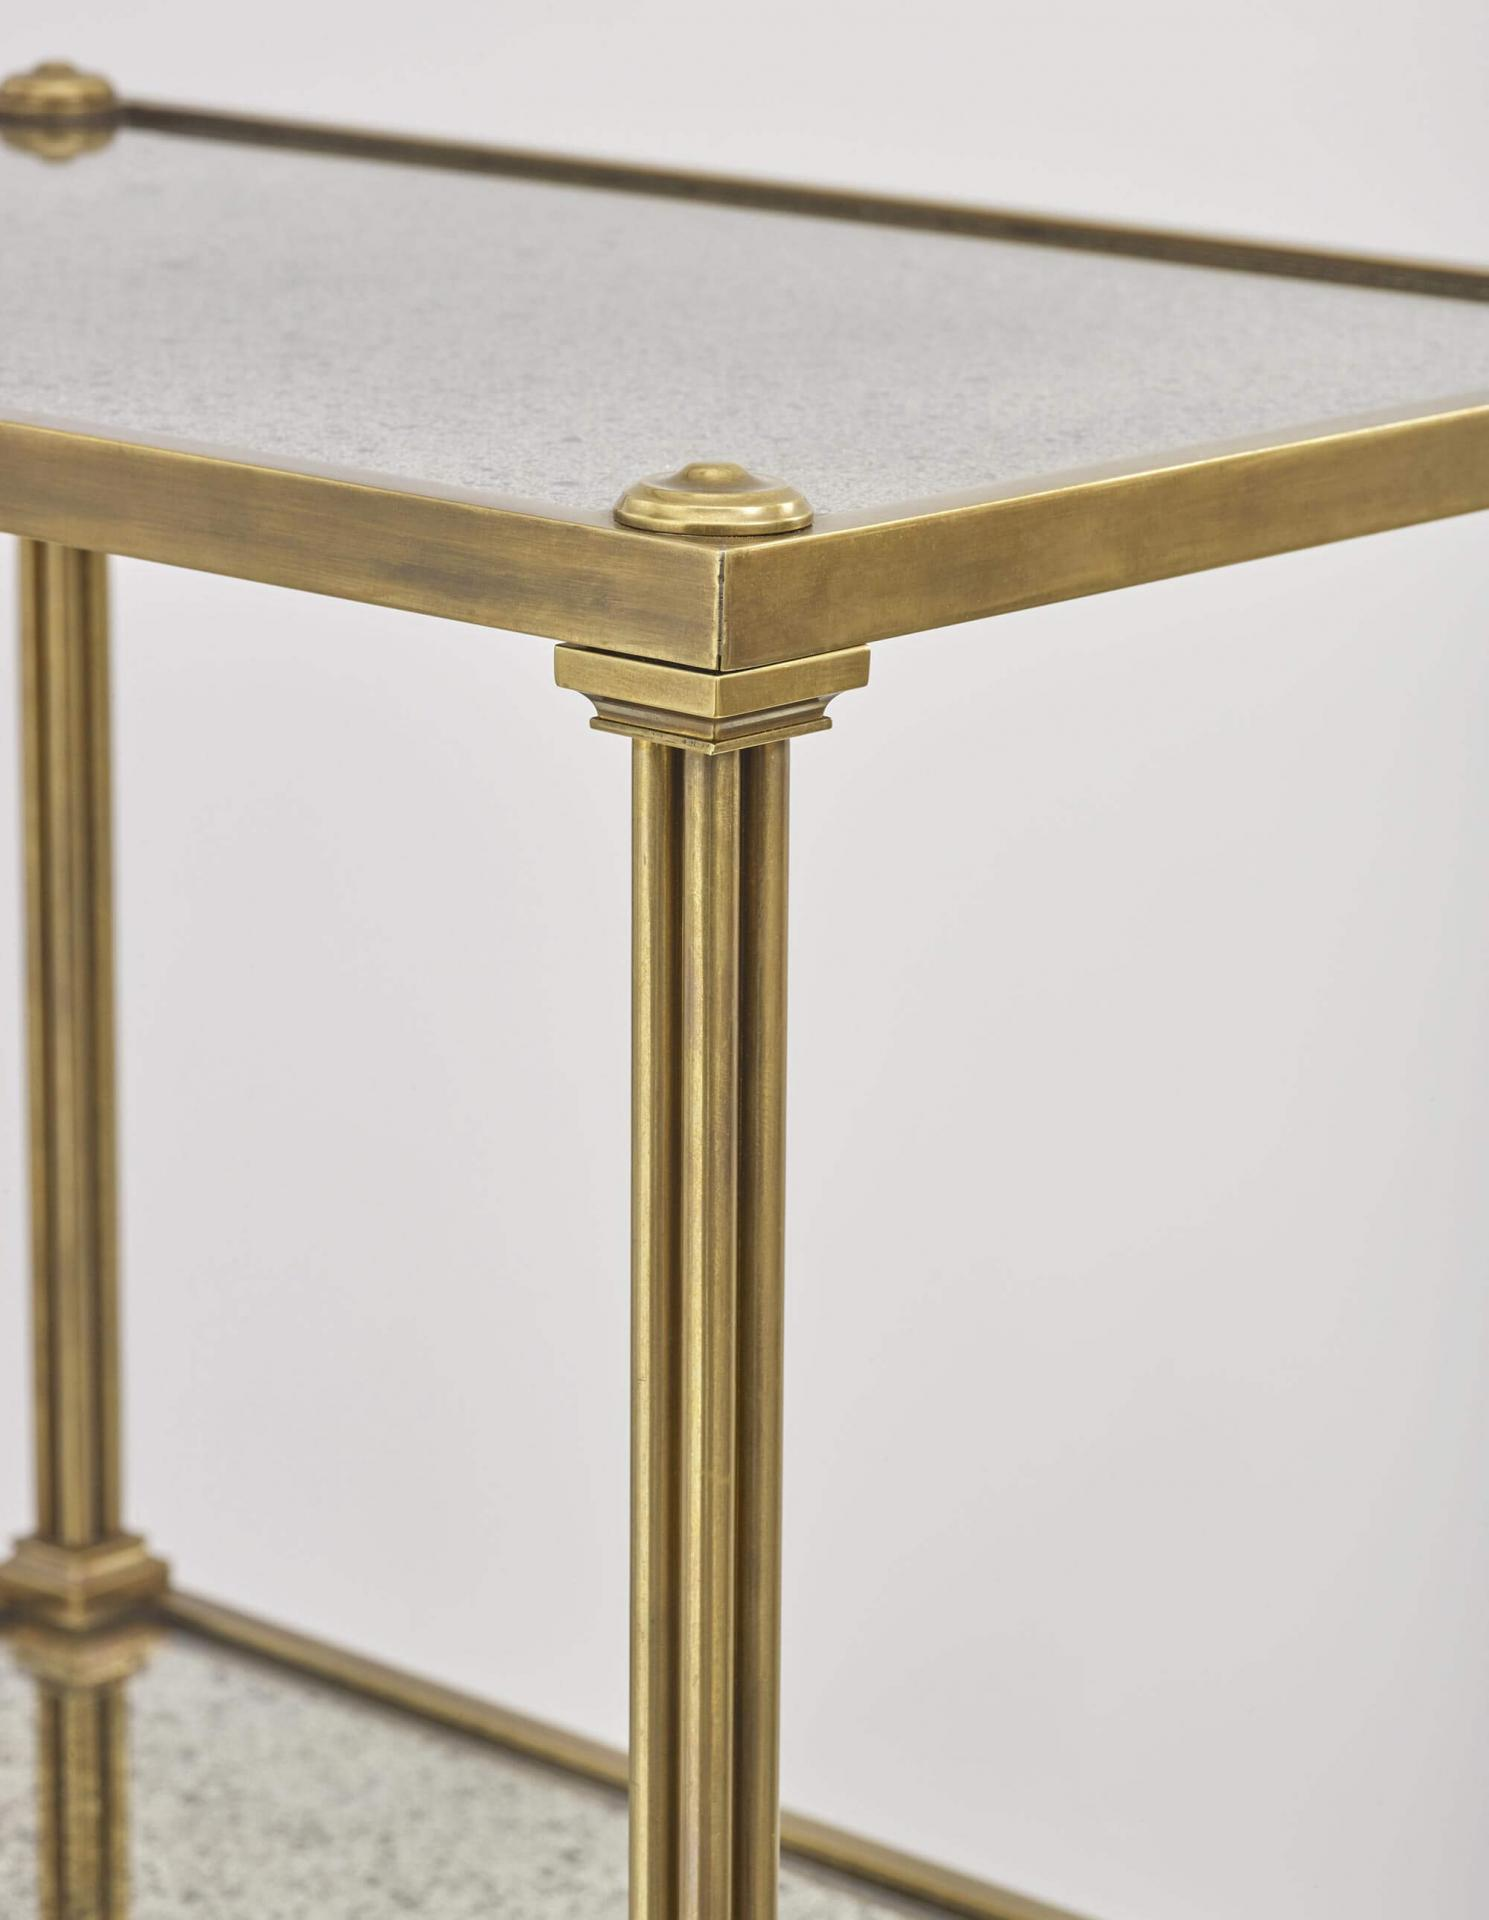 The Carolyn table by Collier Webb is a metal mirror plate side table